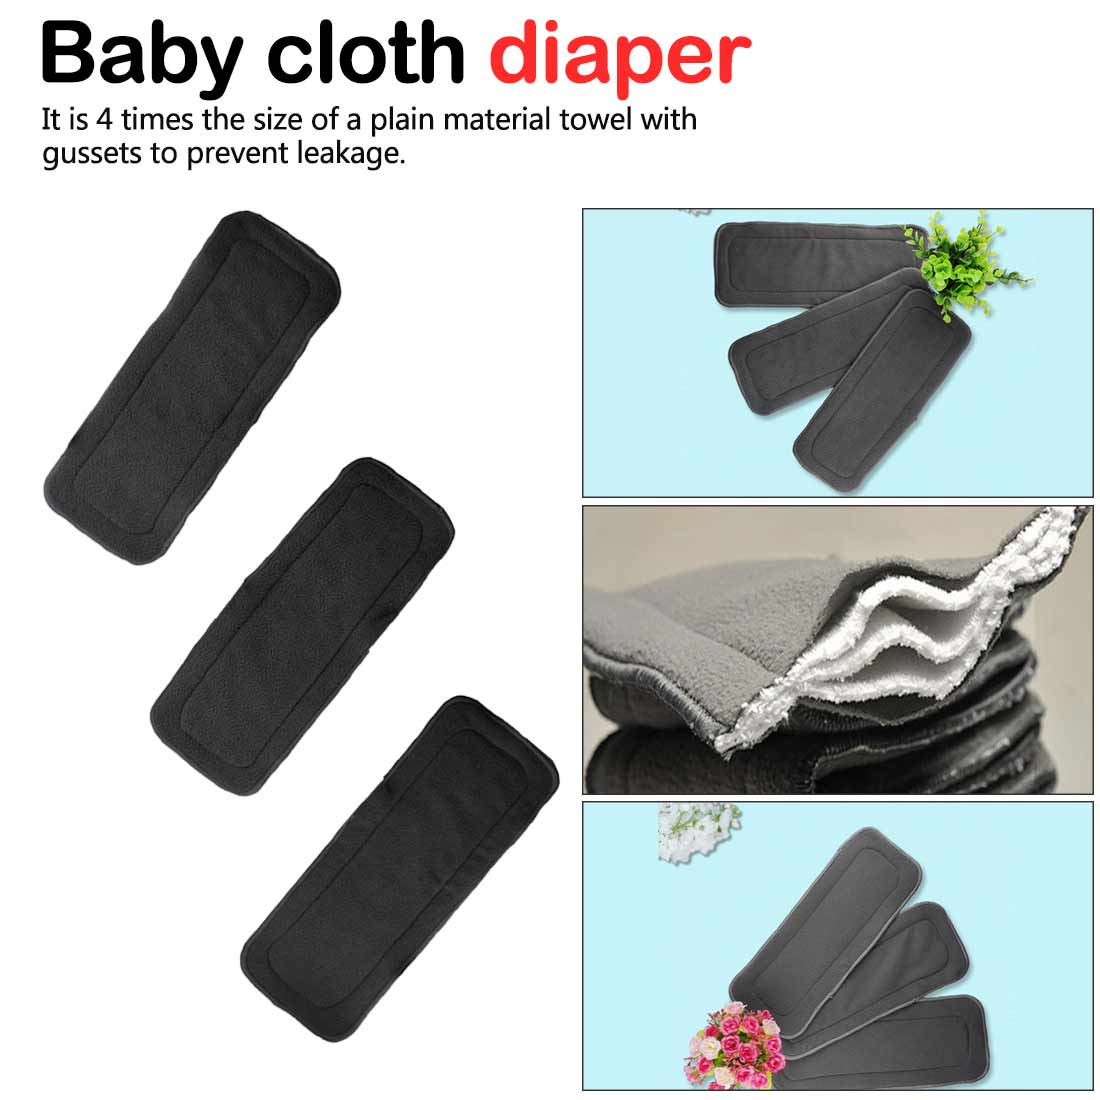 Washable Baby Diaper 4 Layers Bamboo Charcoal Cloth Nappy Liner Super Absorbent Reusable Diaper Insert Pad